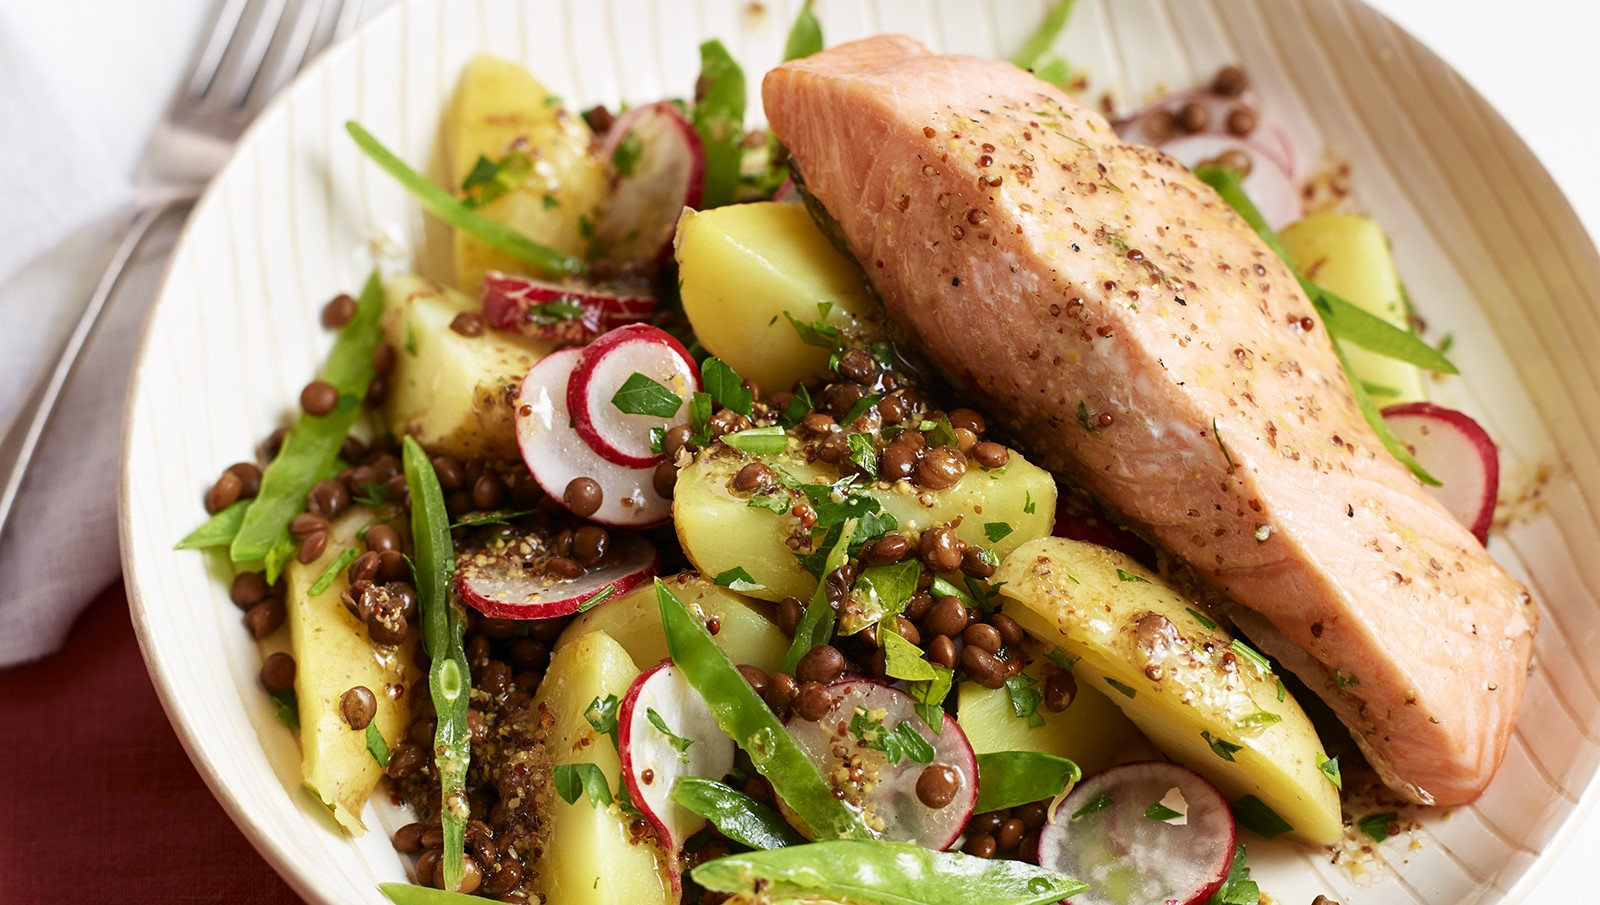 Potato, Lentil and Mangetout Salad with Grilled Salmon